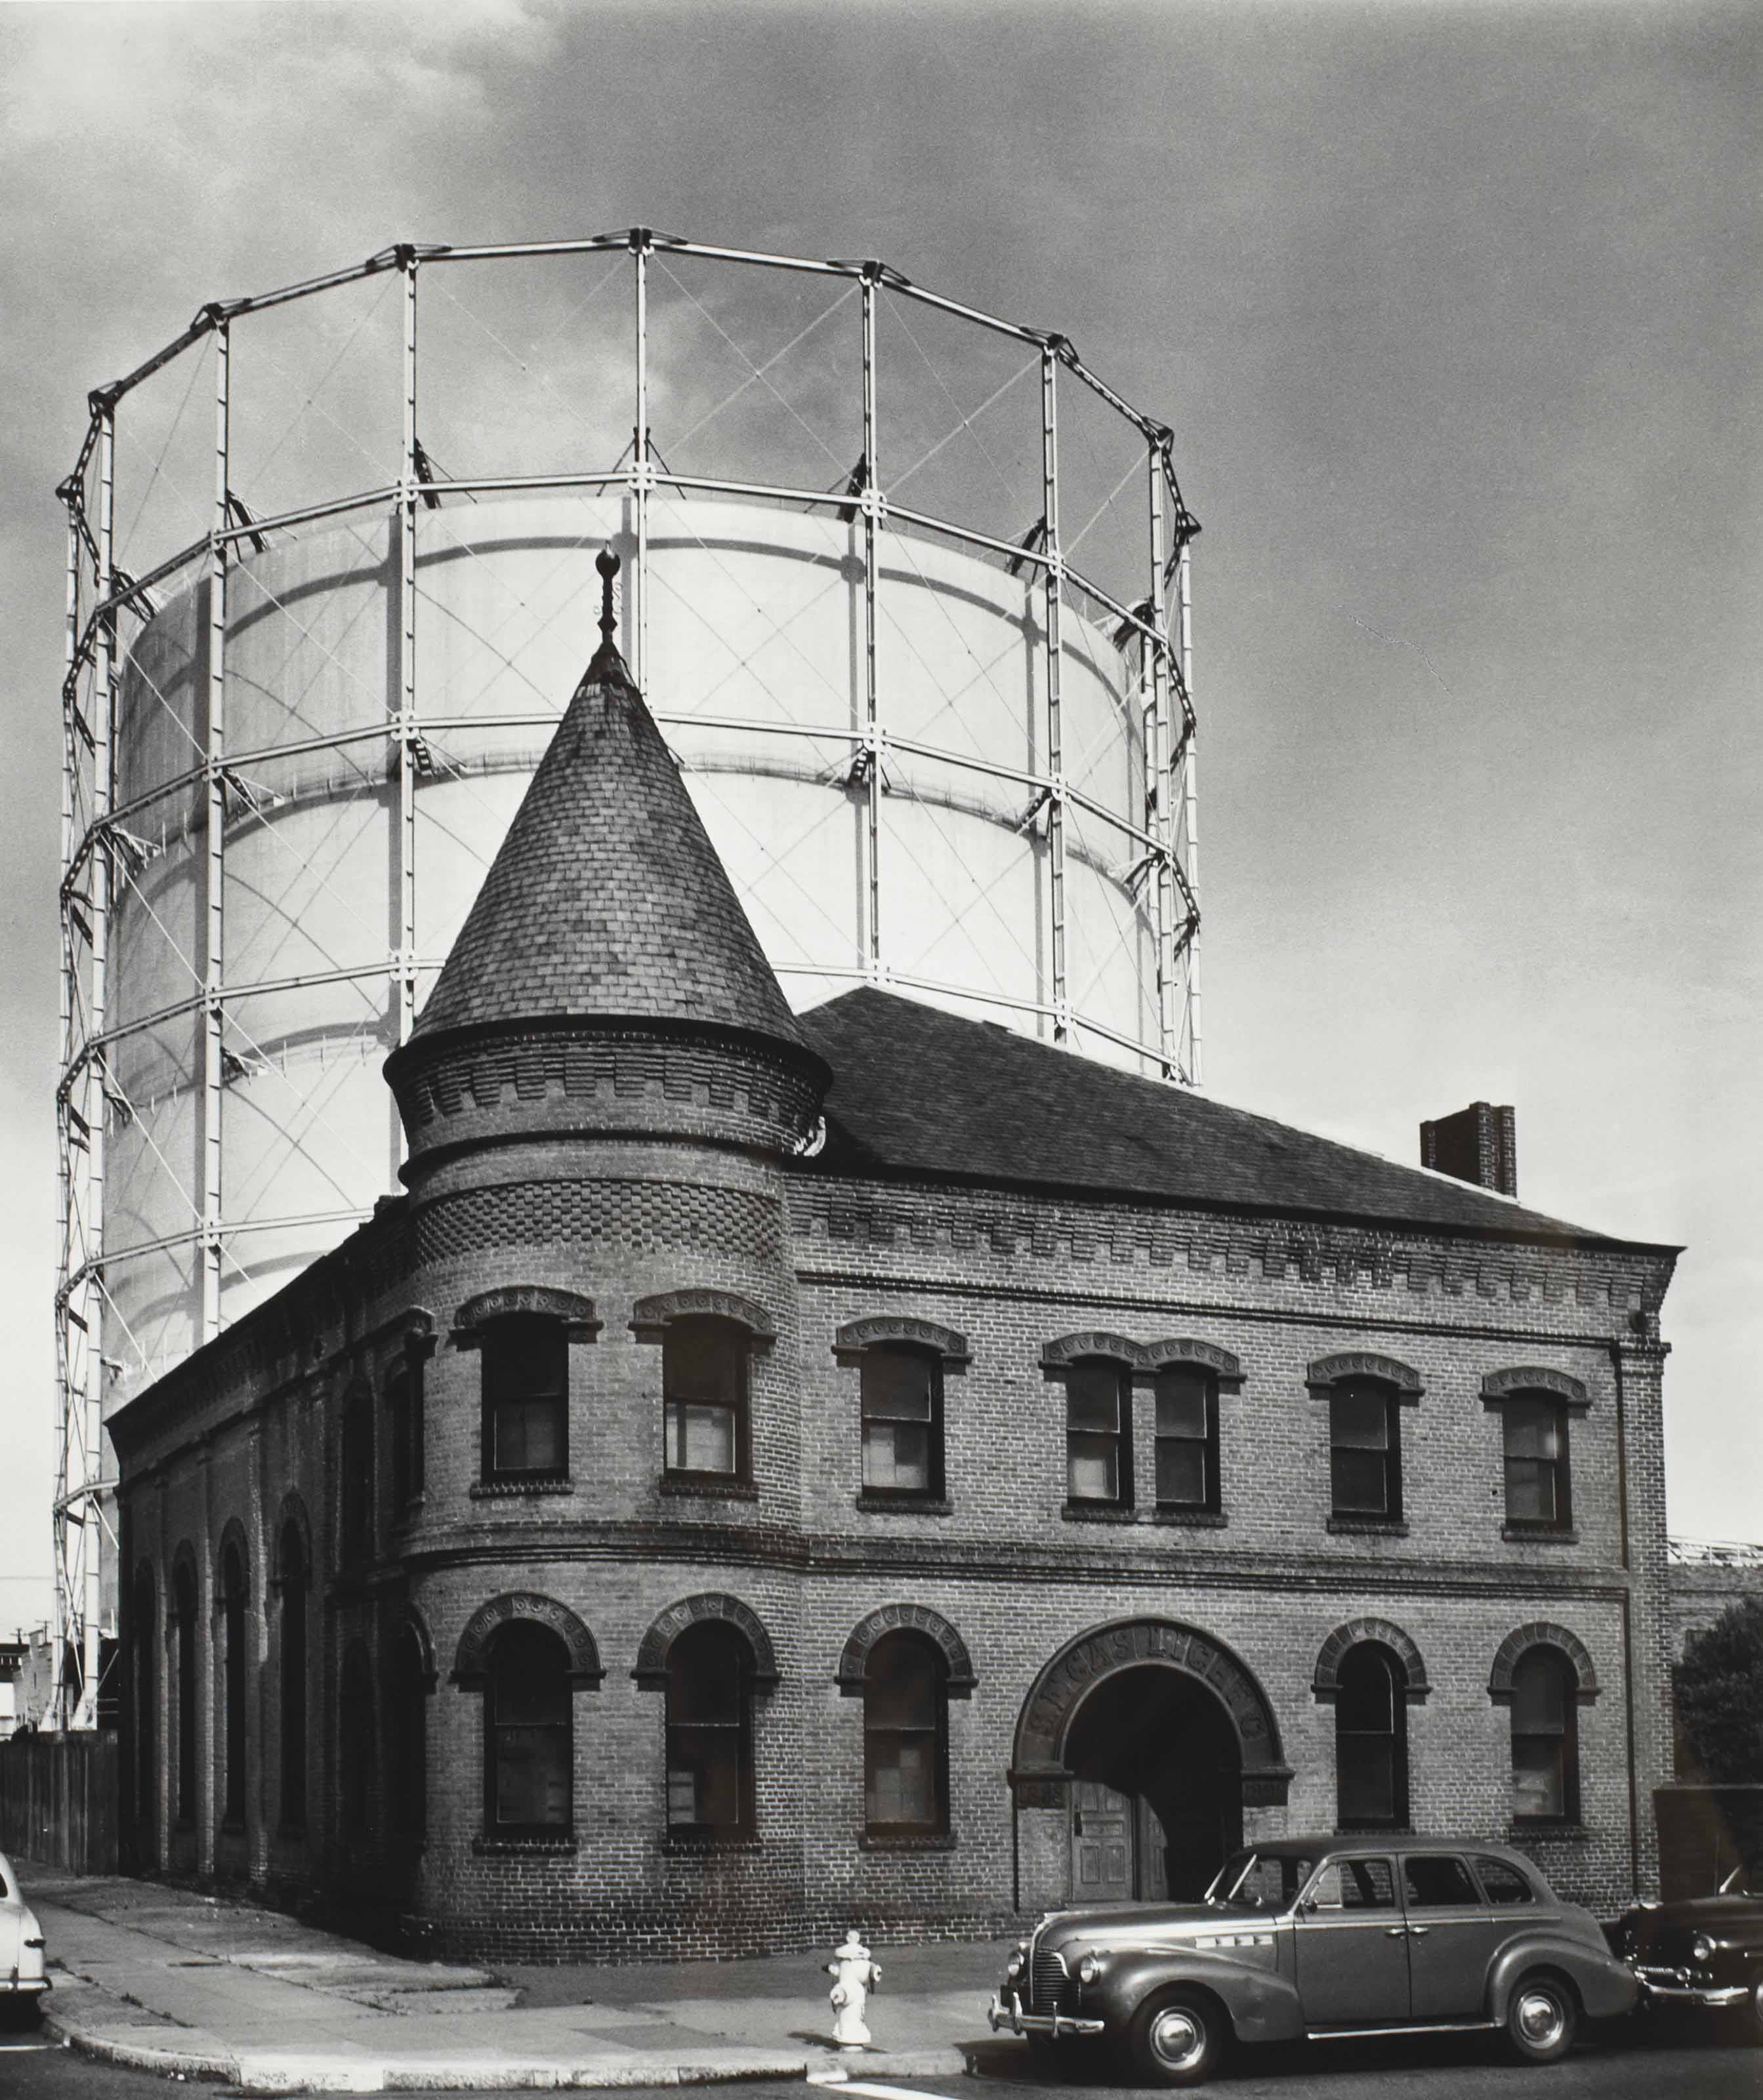 The San Francisco Gas and Light Company (cylindrical building behind older building), 1948